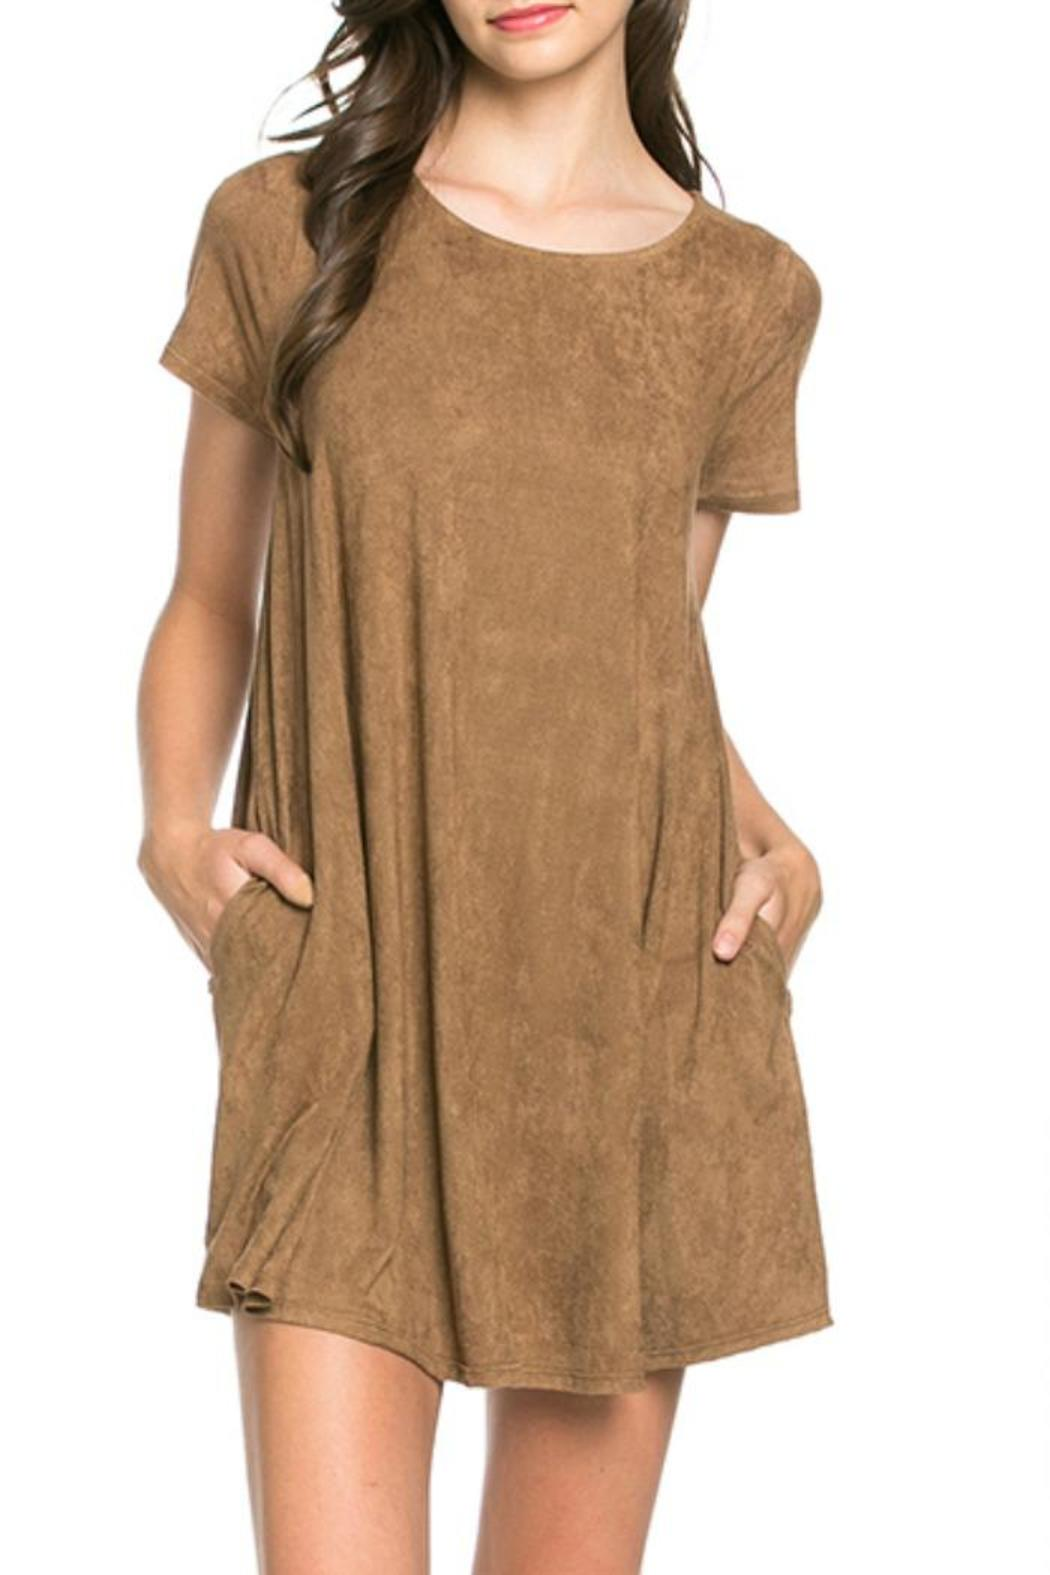 mittoshop suede pocket dress from tampa by the trunk stylist